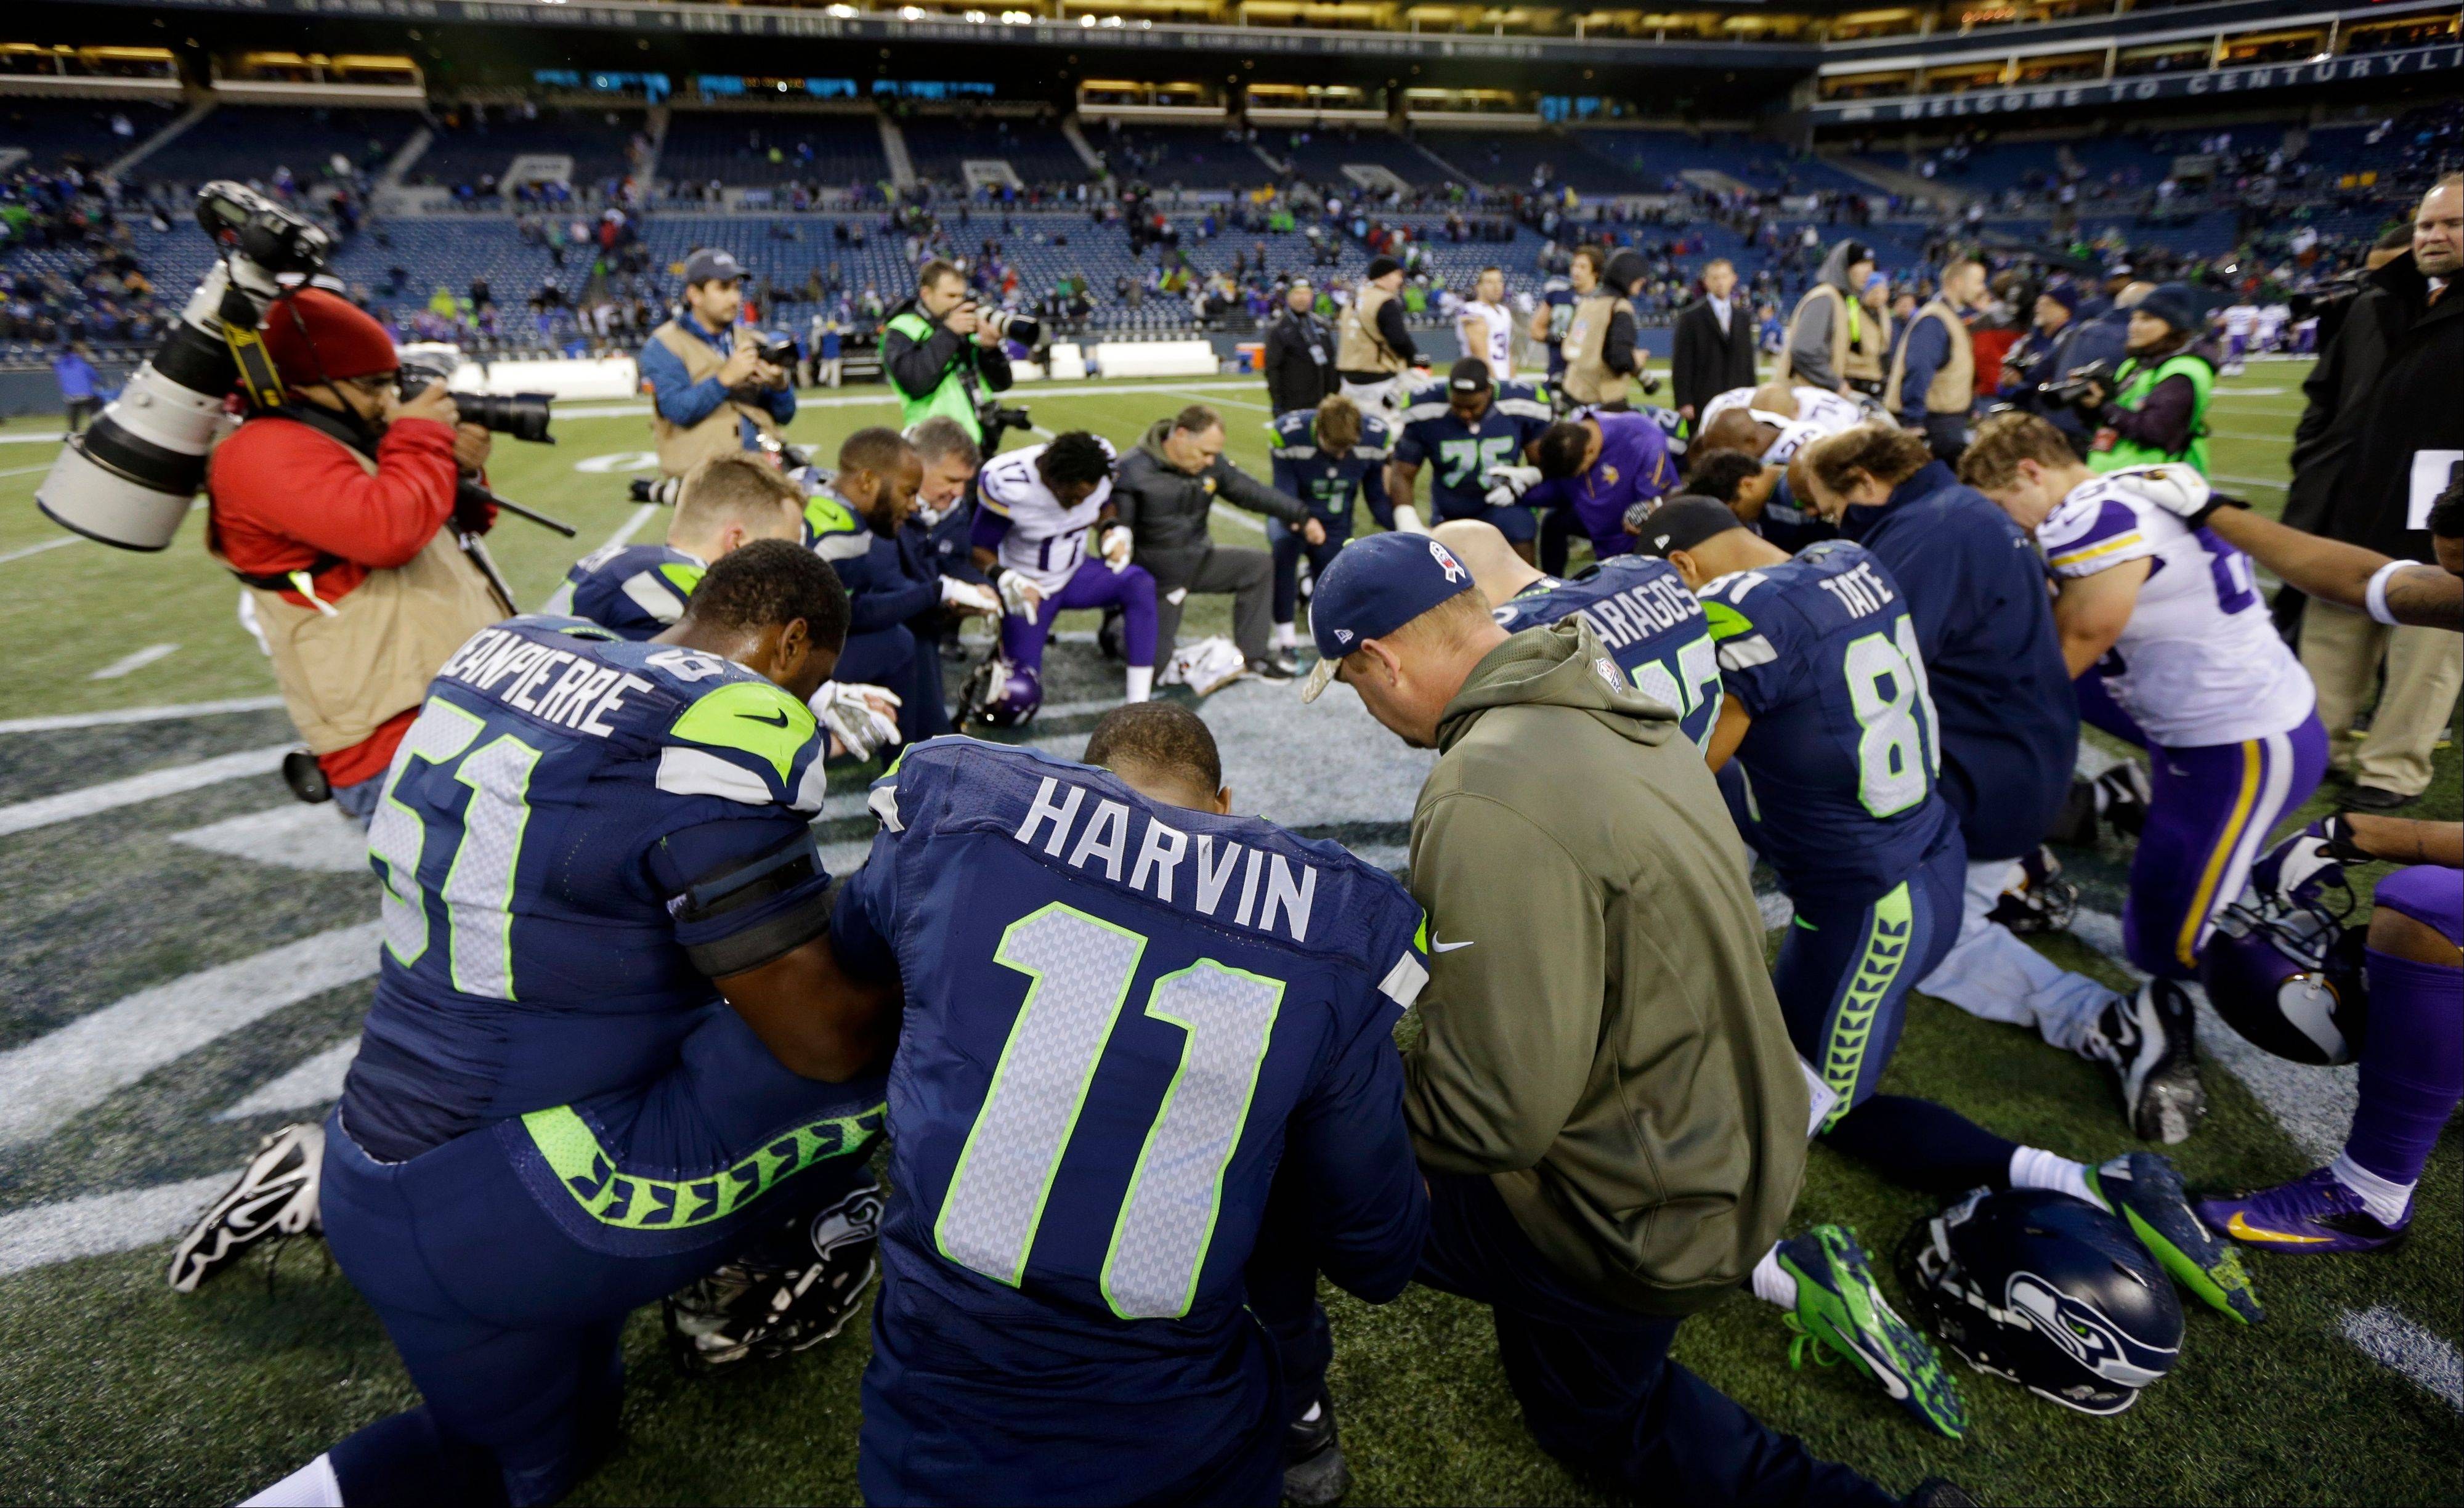 Seattle Seahawks' wide receiver Percy Harvin (11) joins a group of players in kneeling on the field after the Seahawks beat the Minnesota Vikings 41-20 in an NFL football game, Sunday, Nov. 17, 2013, in Seattle.